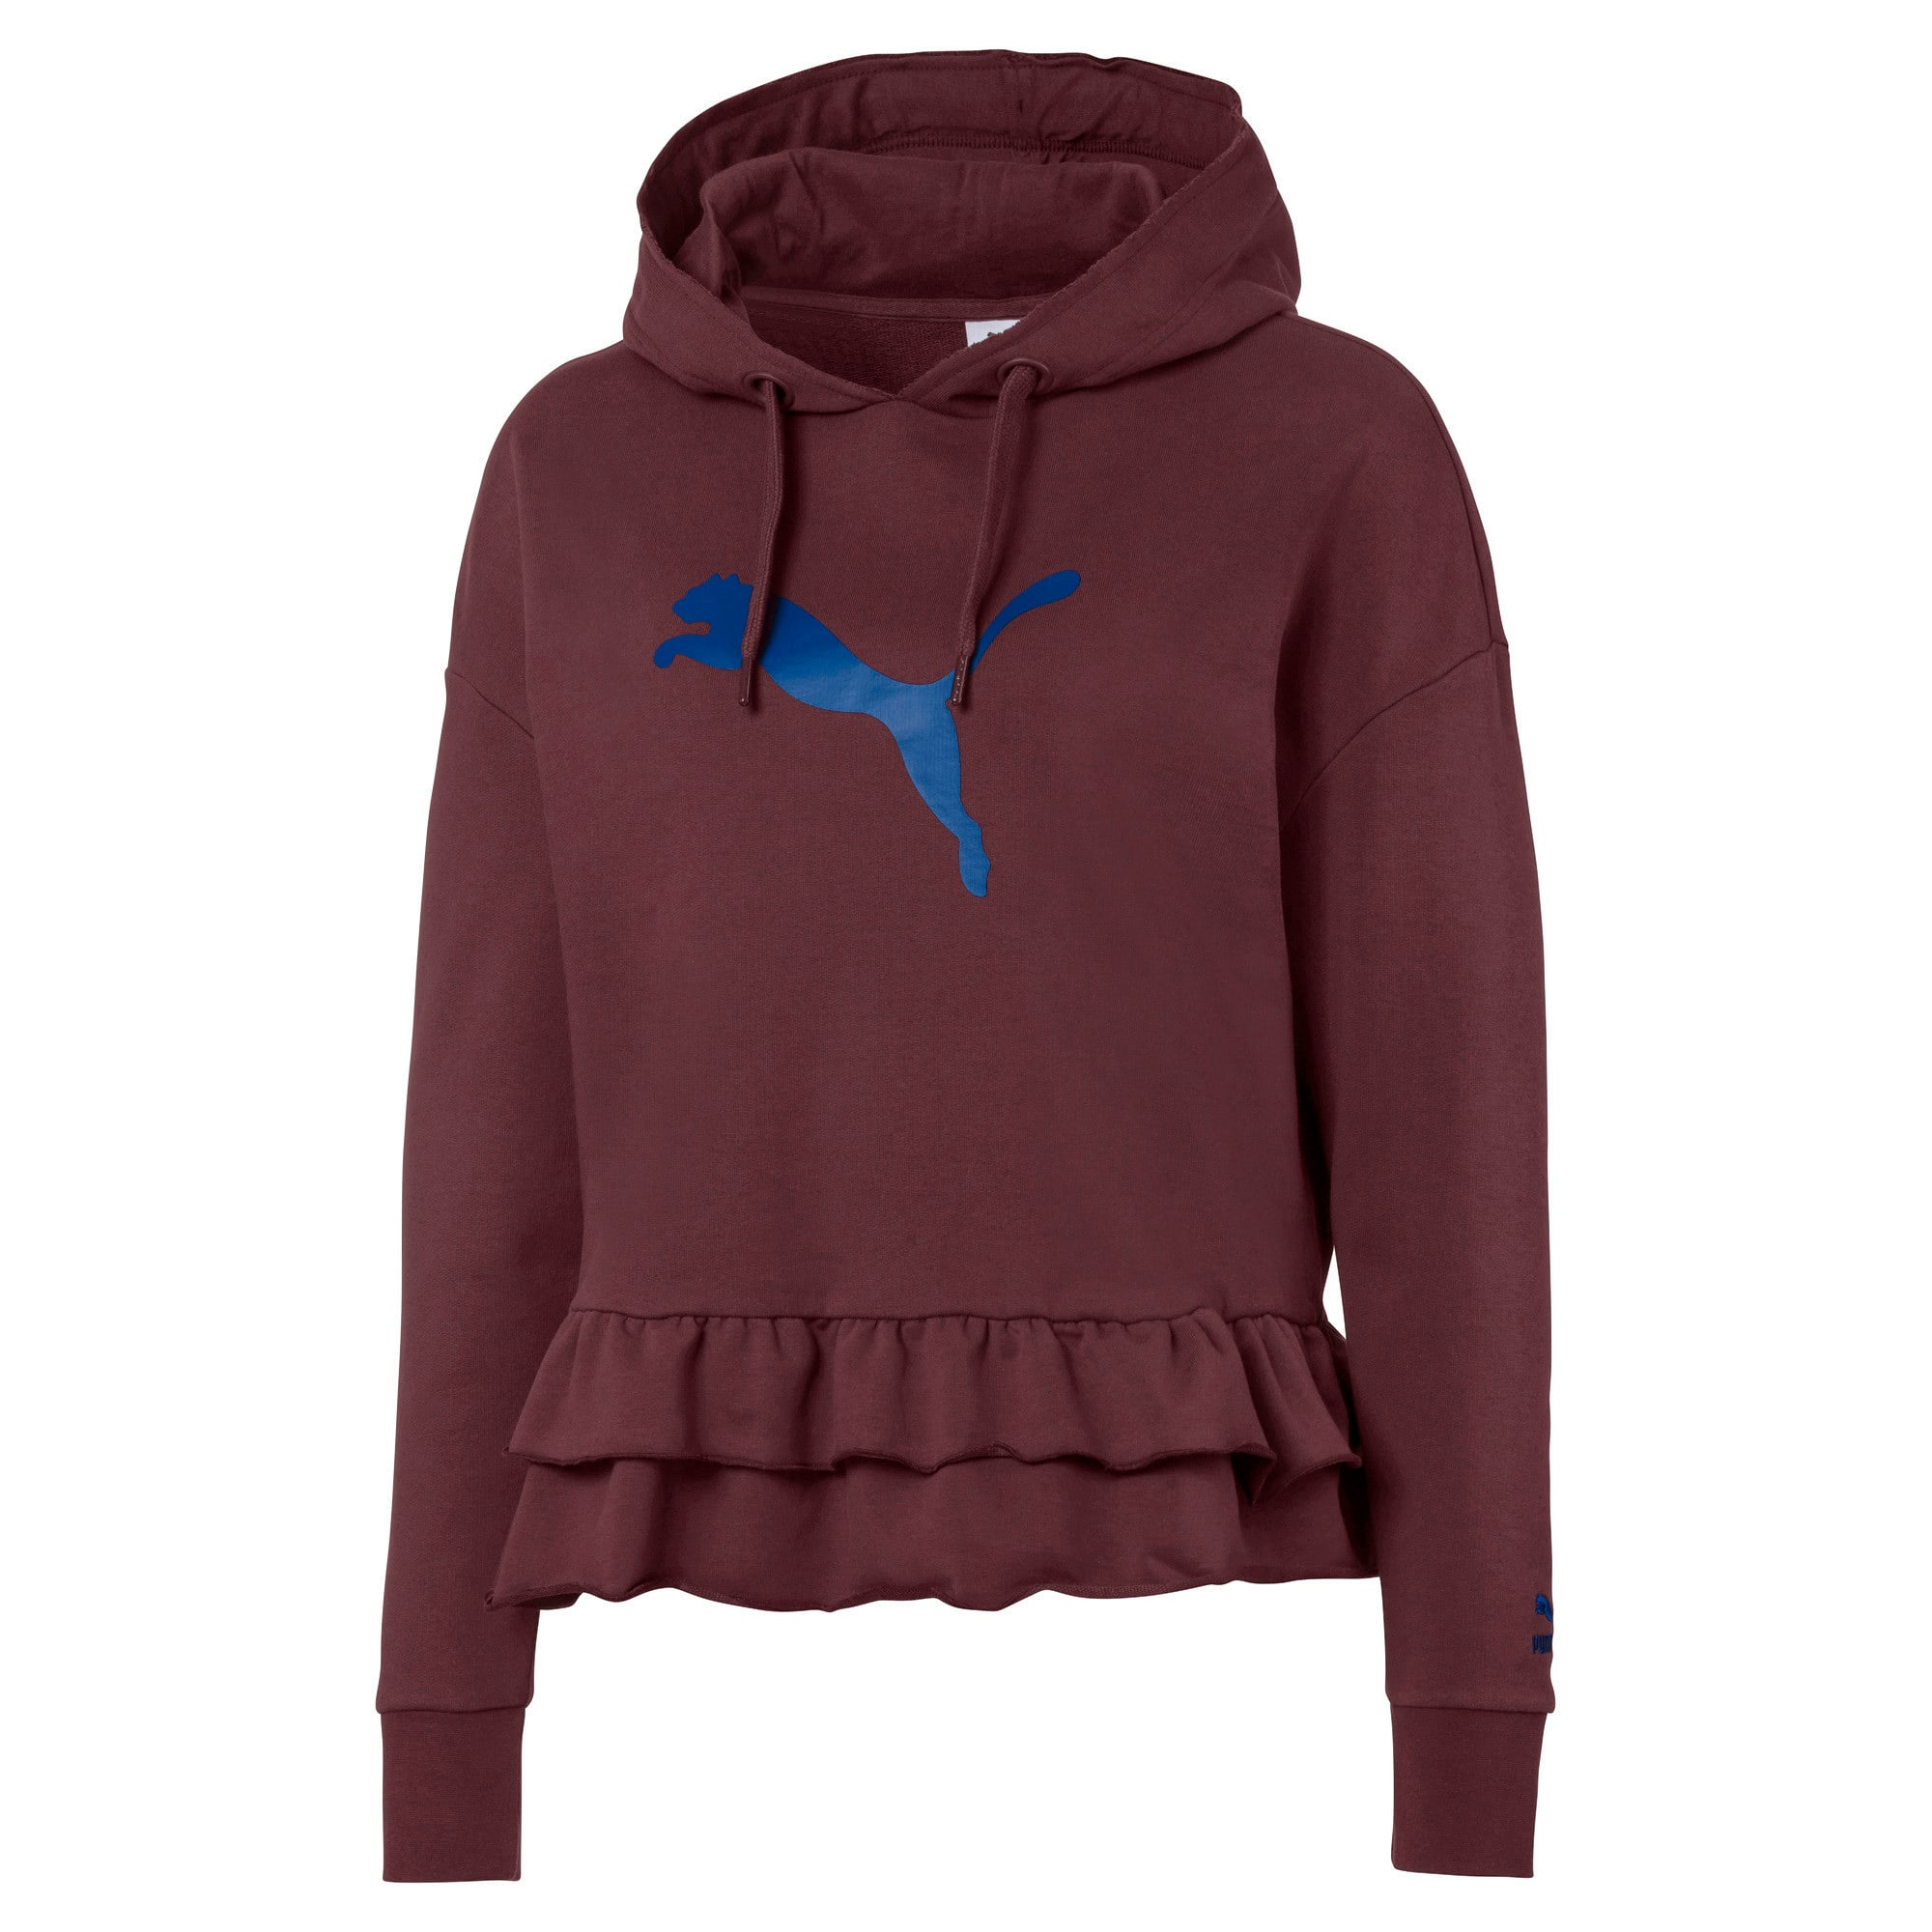 Thumbnail 1 of PUMA x TYAKASHA Women's Hoodie, Vineyard Wine, medium